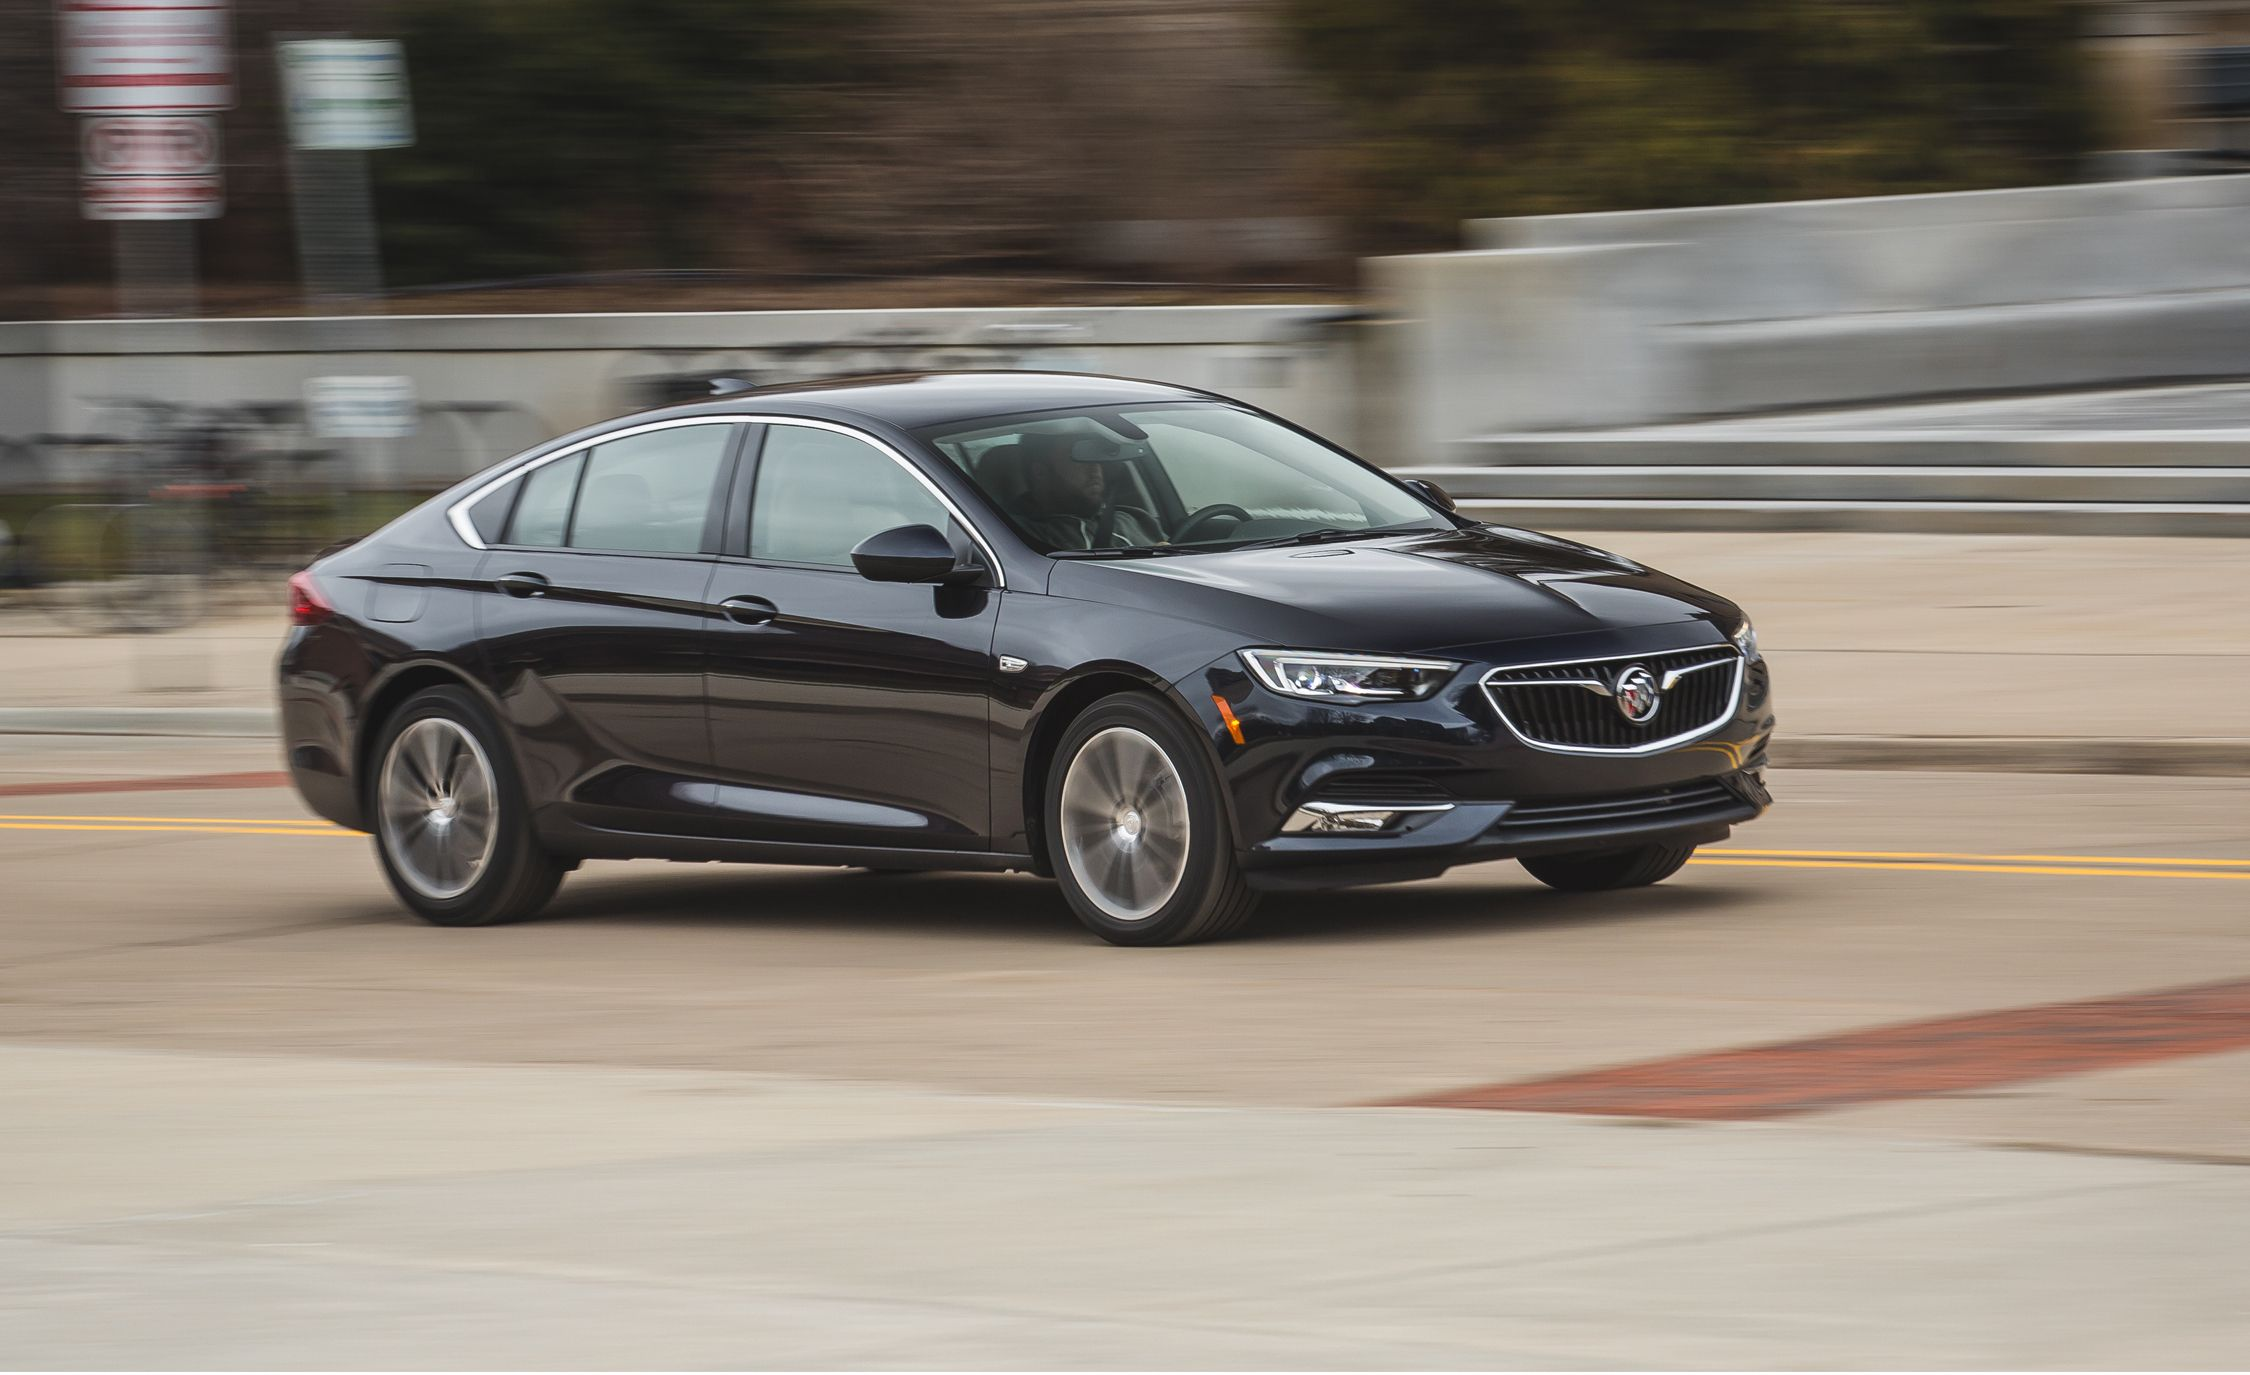 Glasregal 40 X 20 2018 Buick Regal Sportback Fwd Test Review Car And Driver